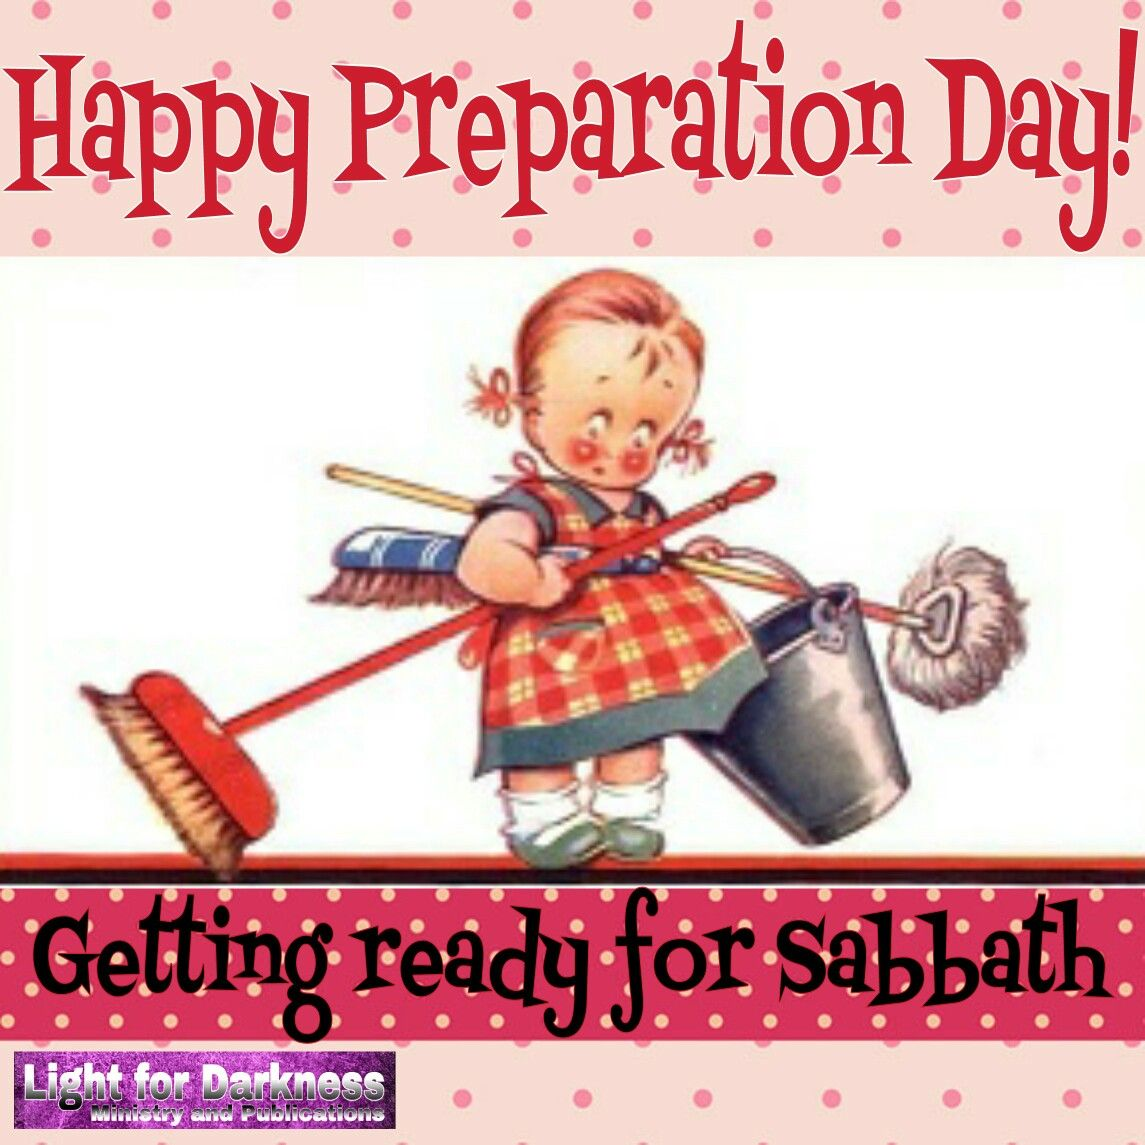 Happy Preparation Day Getting Ready For Shabbat Happy Sabbath Sabbath Day Holy Sabbath Rest